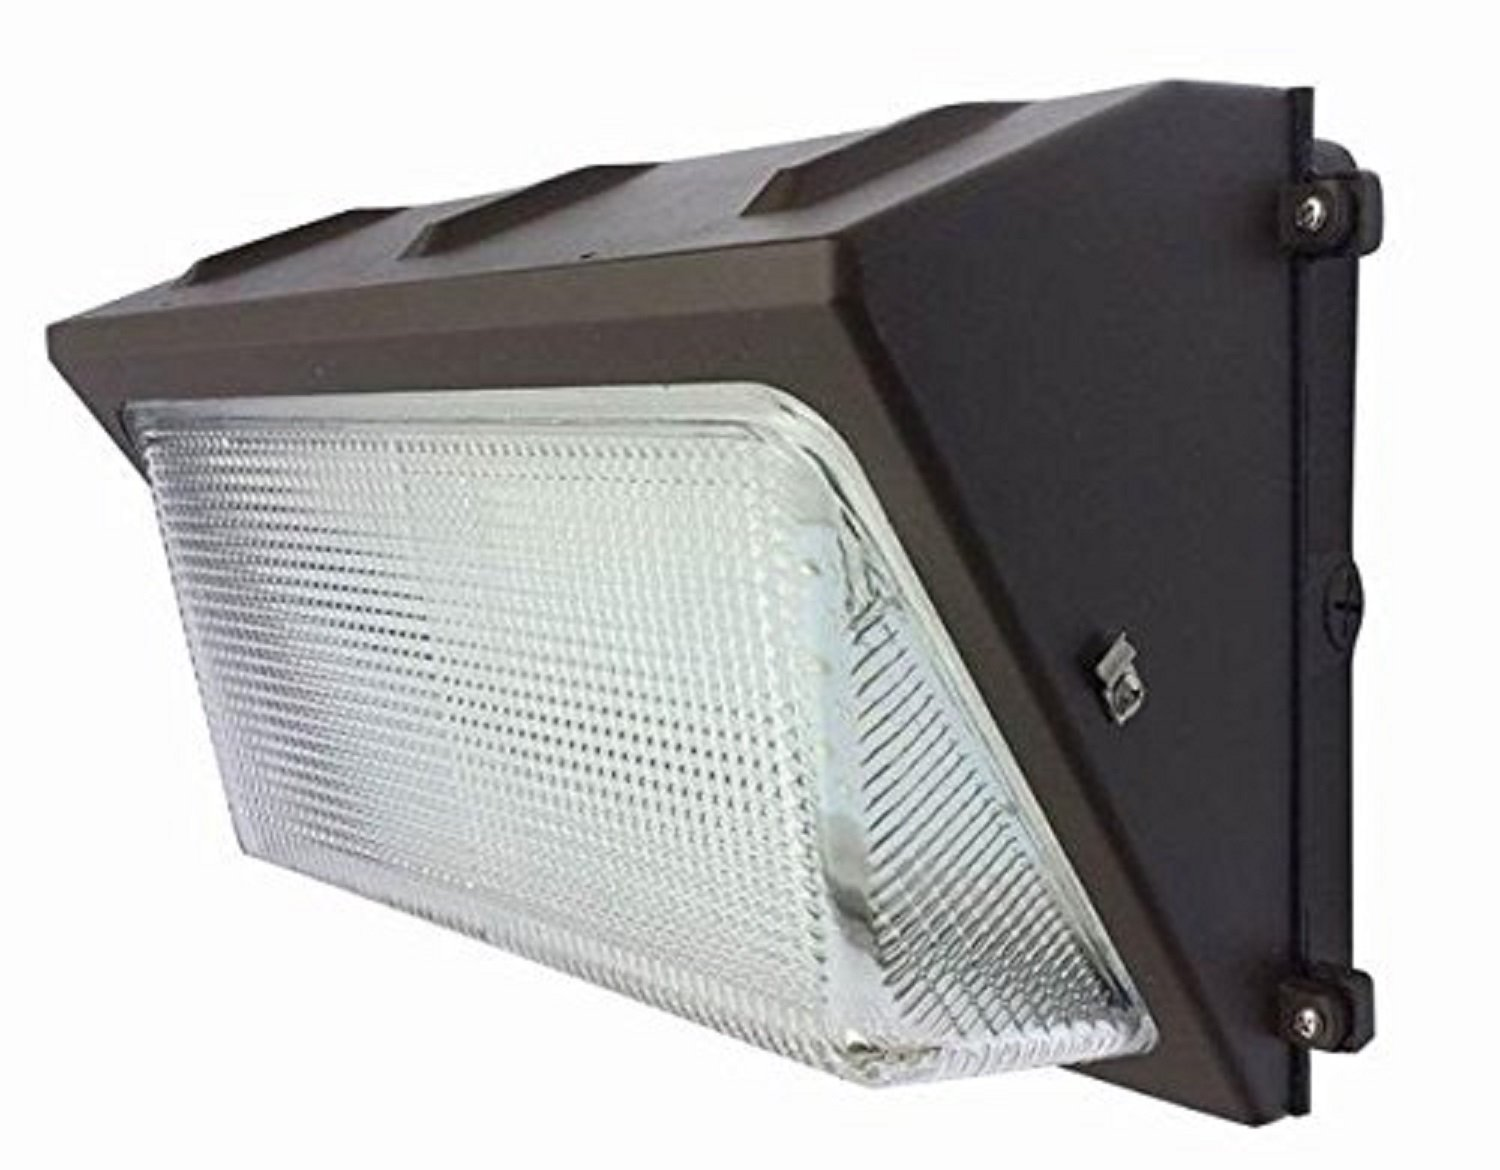 UL & DLC Listed- LED 120W Wall Pack Outdoor Lighting, 5000K Cool White, 11,000 Lumen, 800 Watt Equivalency Replacement, 50,000 Life Hours, HIGHEST Quality, Wall Light, Industrial, Commercial by SC Lighting